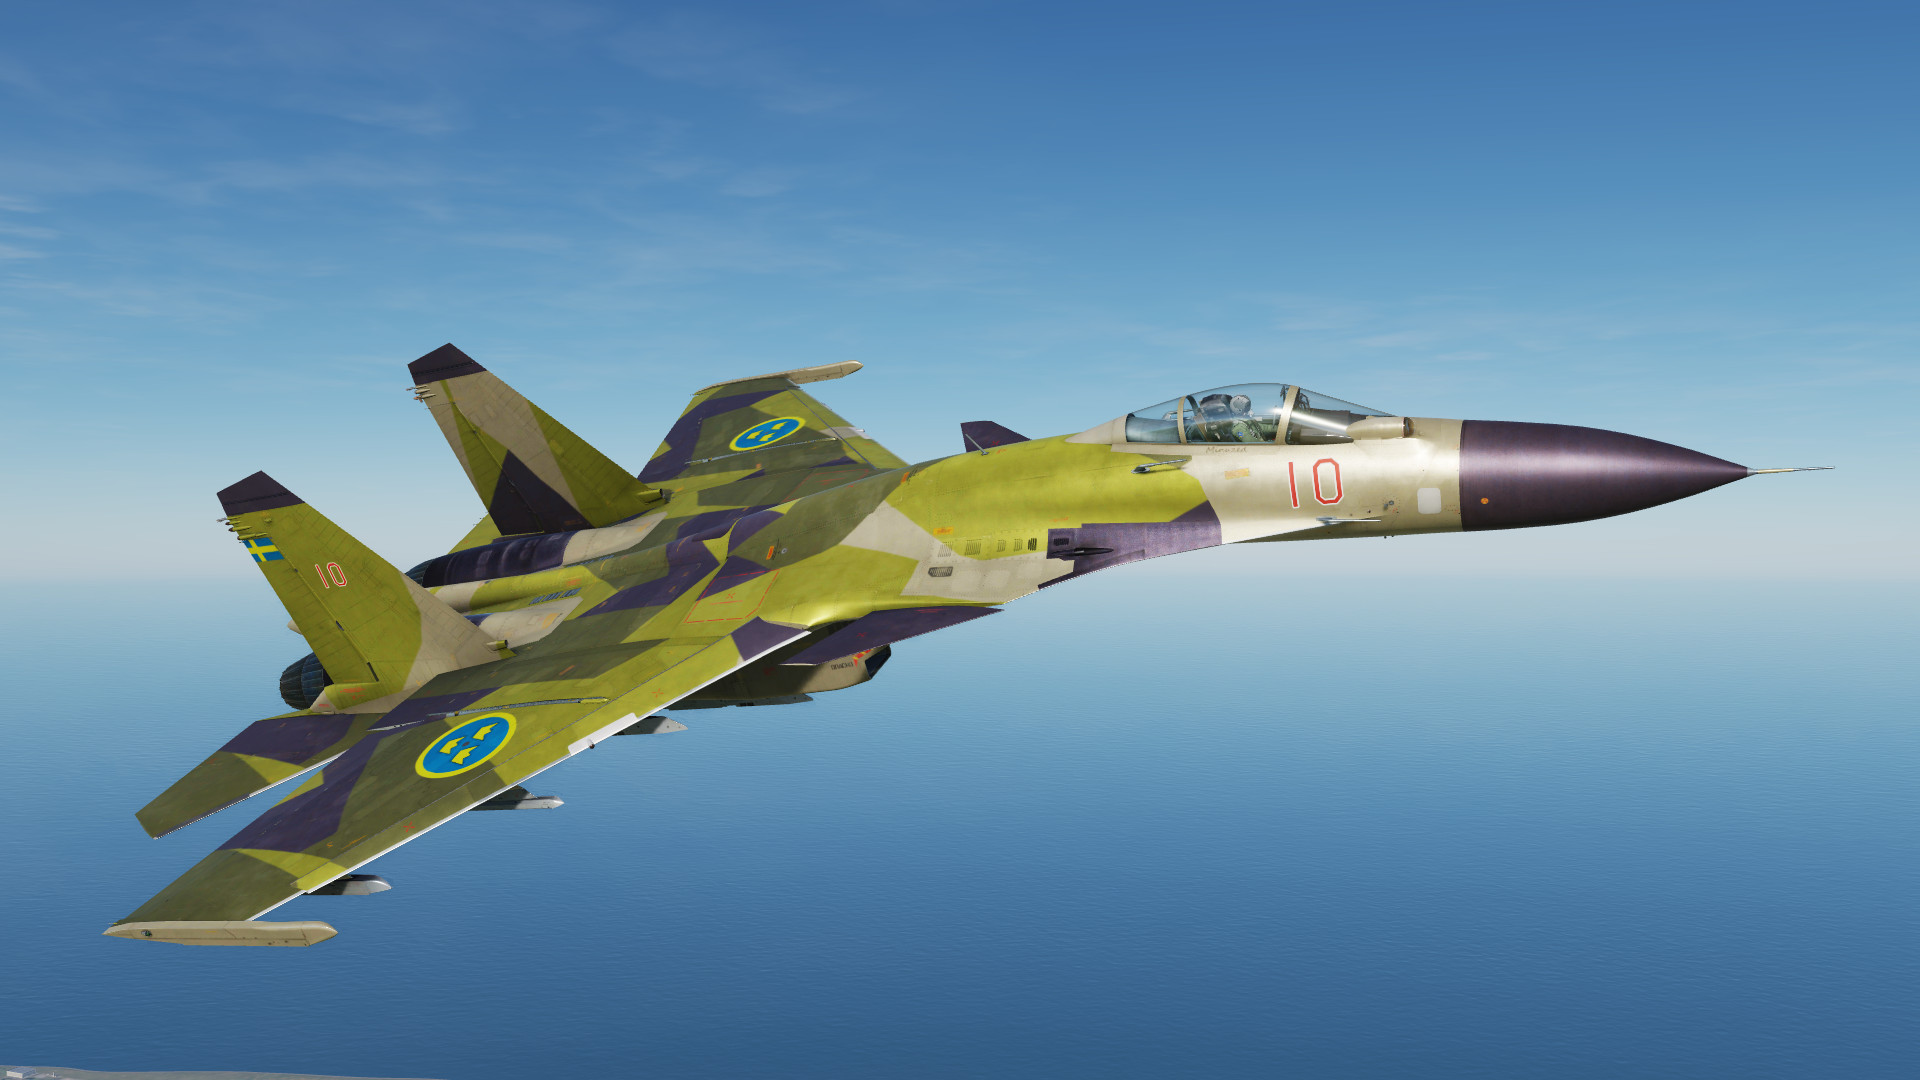 Fictional Swedish Airforce Su-33 M90 Camo